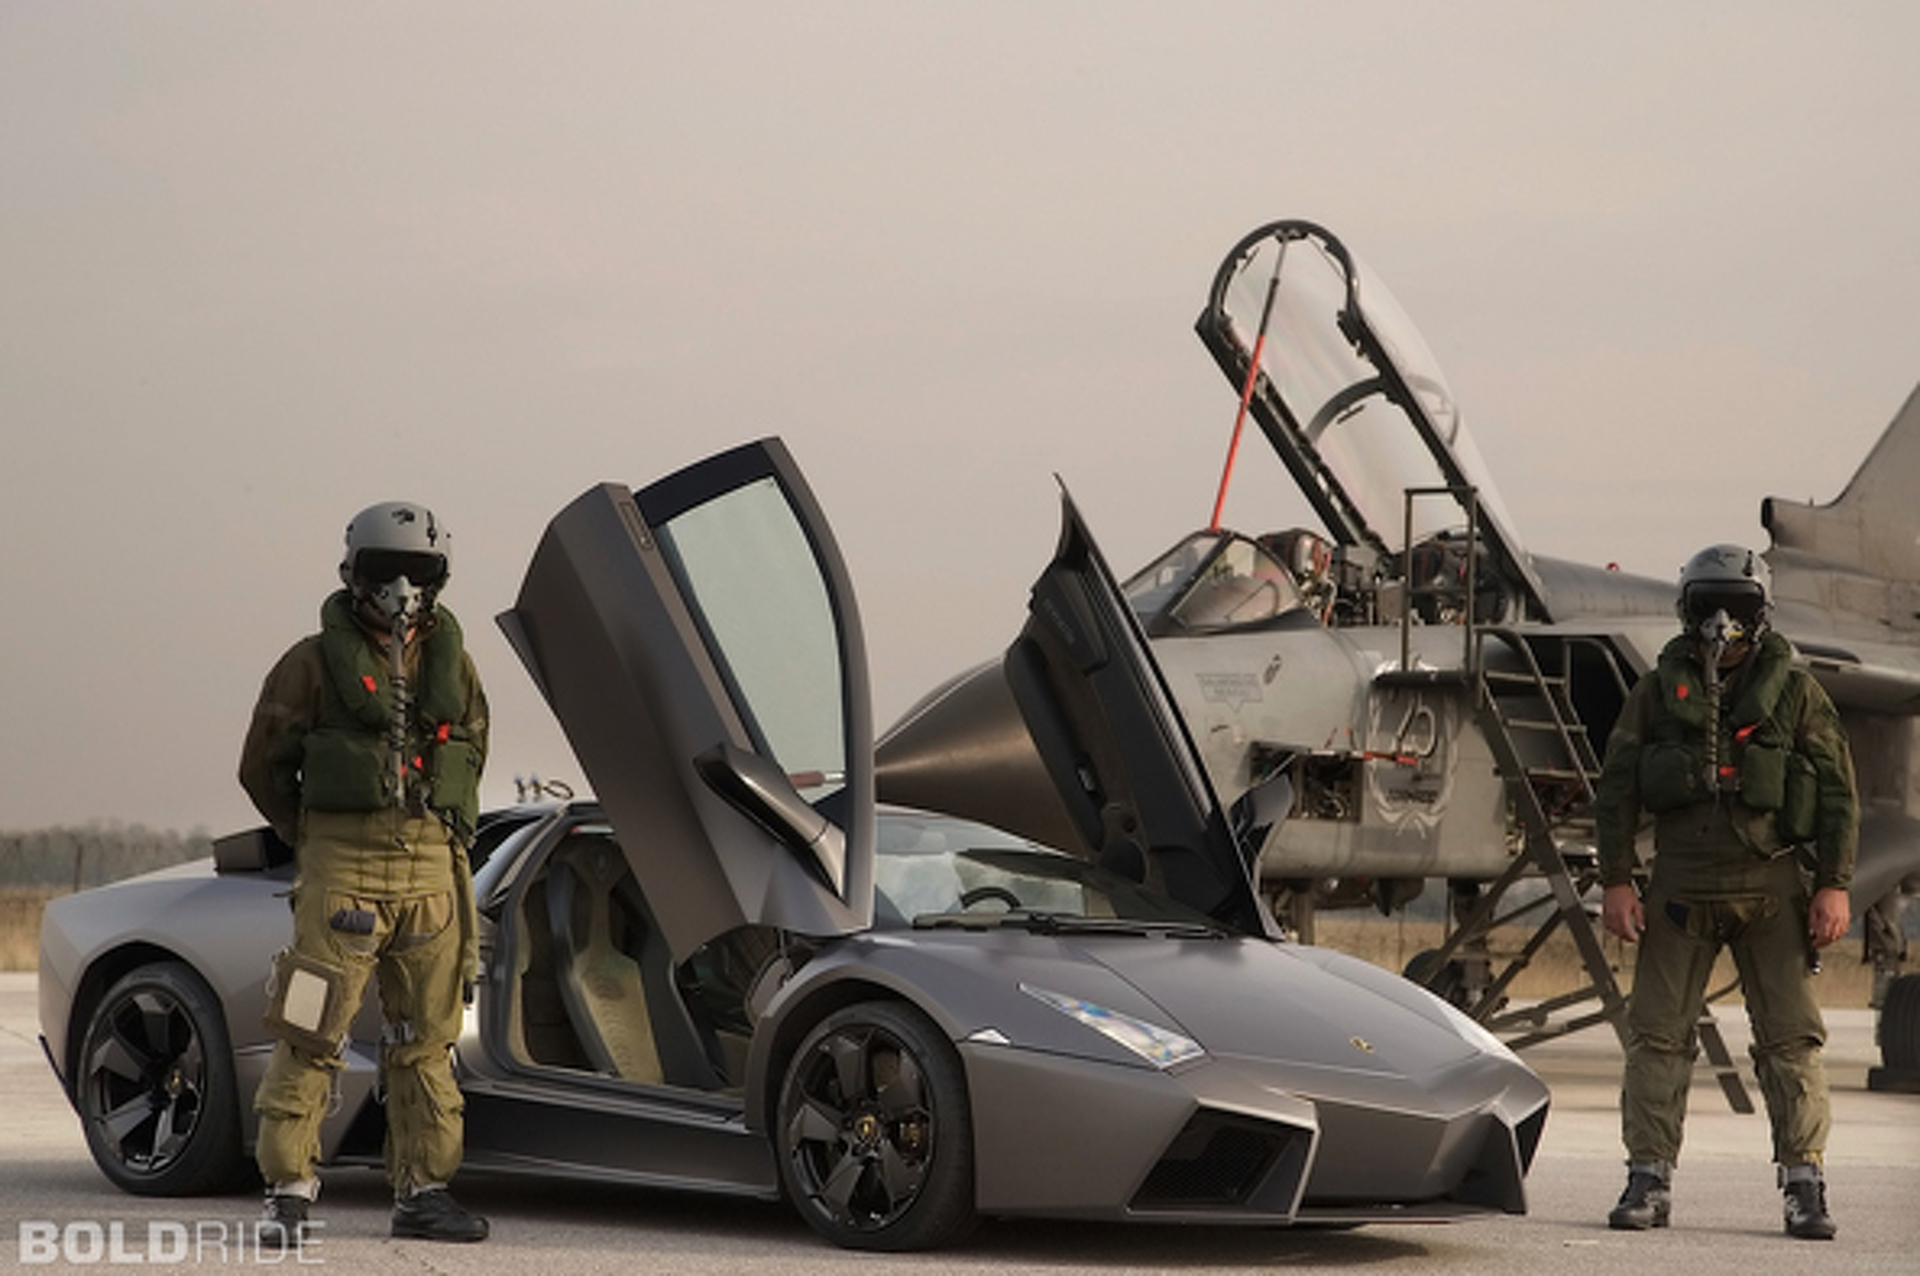 Wheels Wallpaper: 2008 Lamborghini Reventon